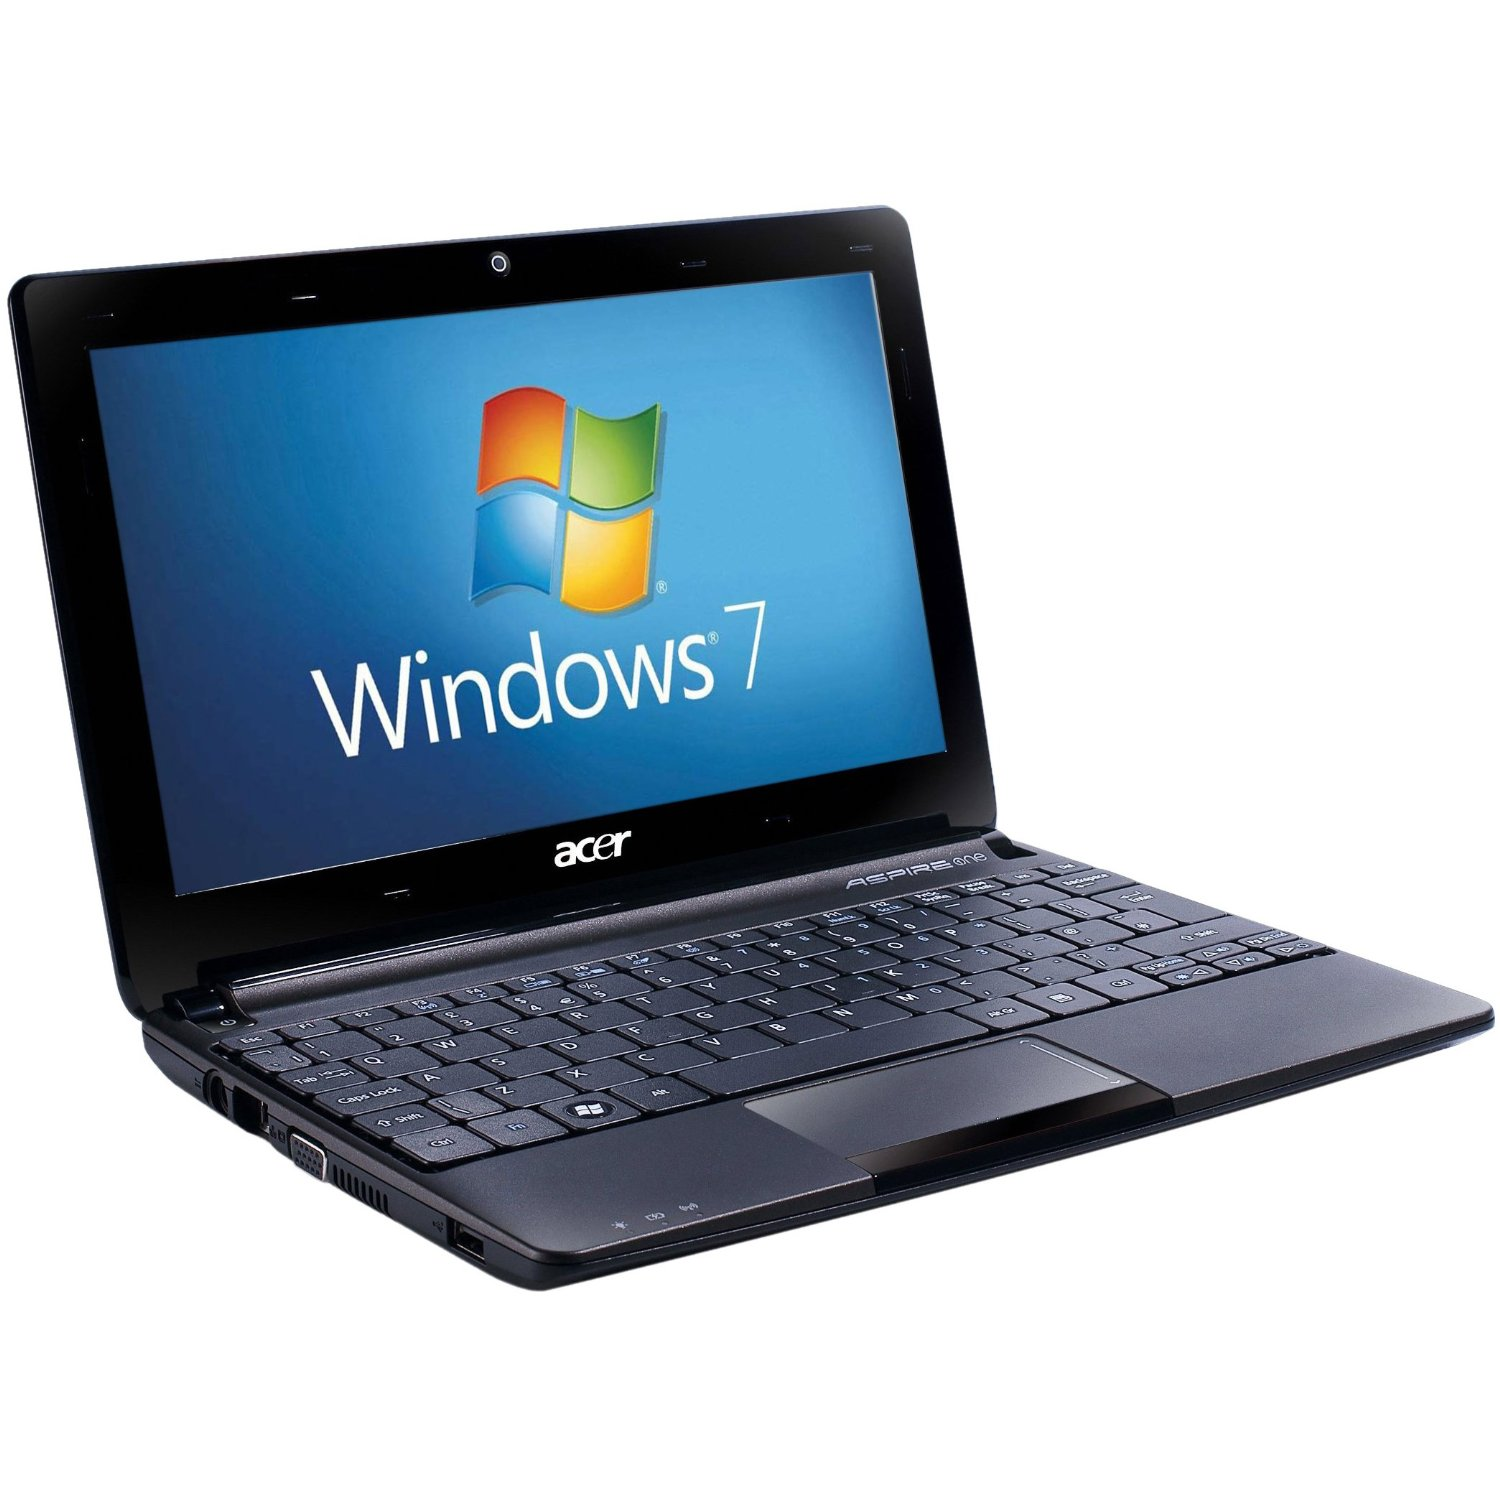 Acer Aspire One D257 Netbook PC Review Spec Laptoppricehot